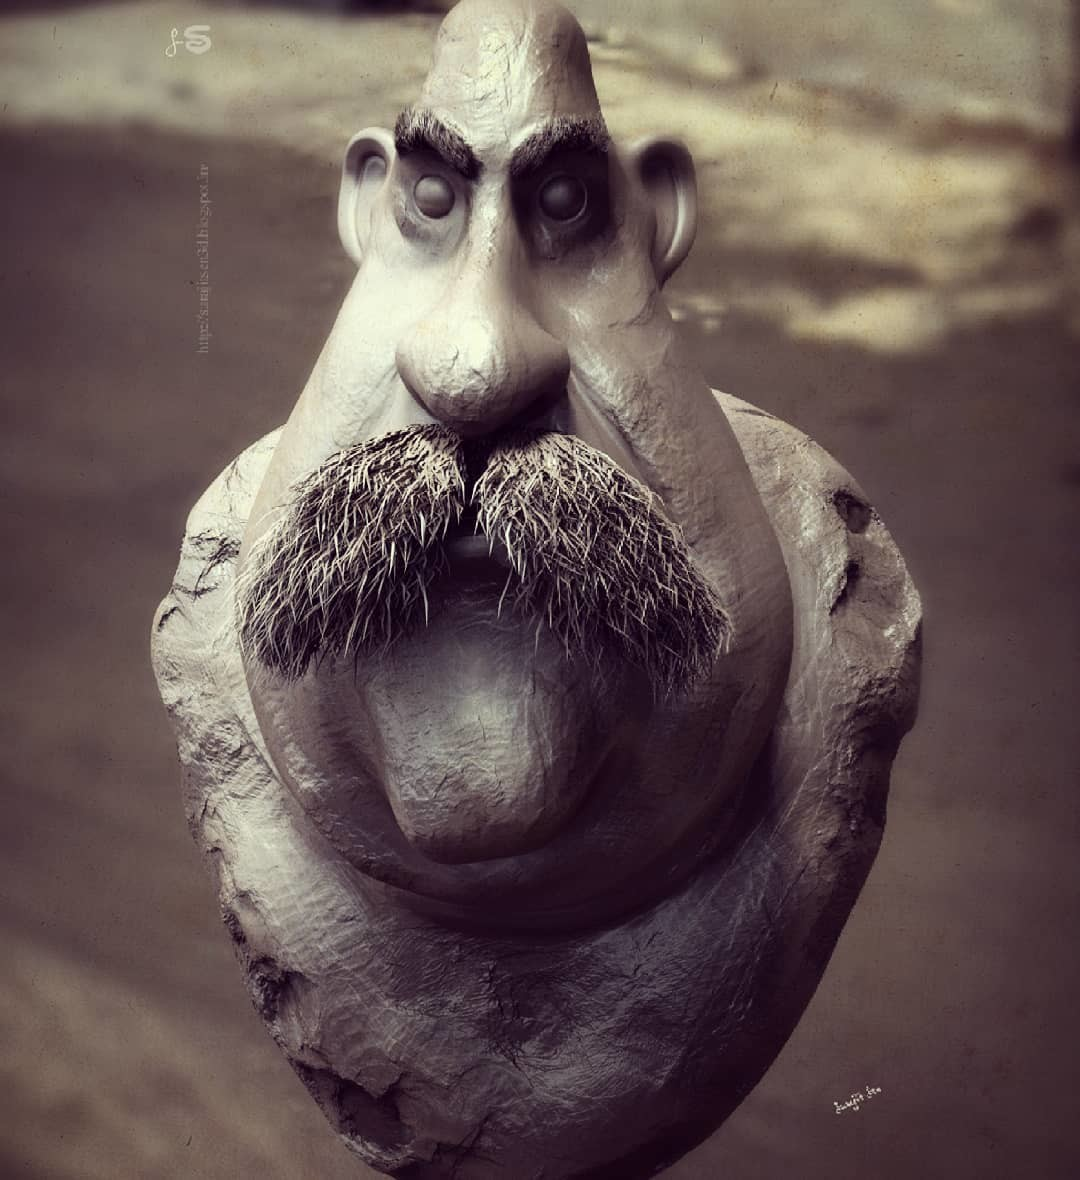 My free time speed sculpt study....I love to play with clay!......tried to sculpt a human face. ...:)  Wish to share :)